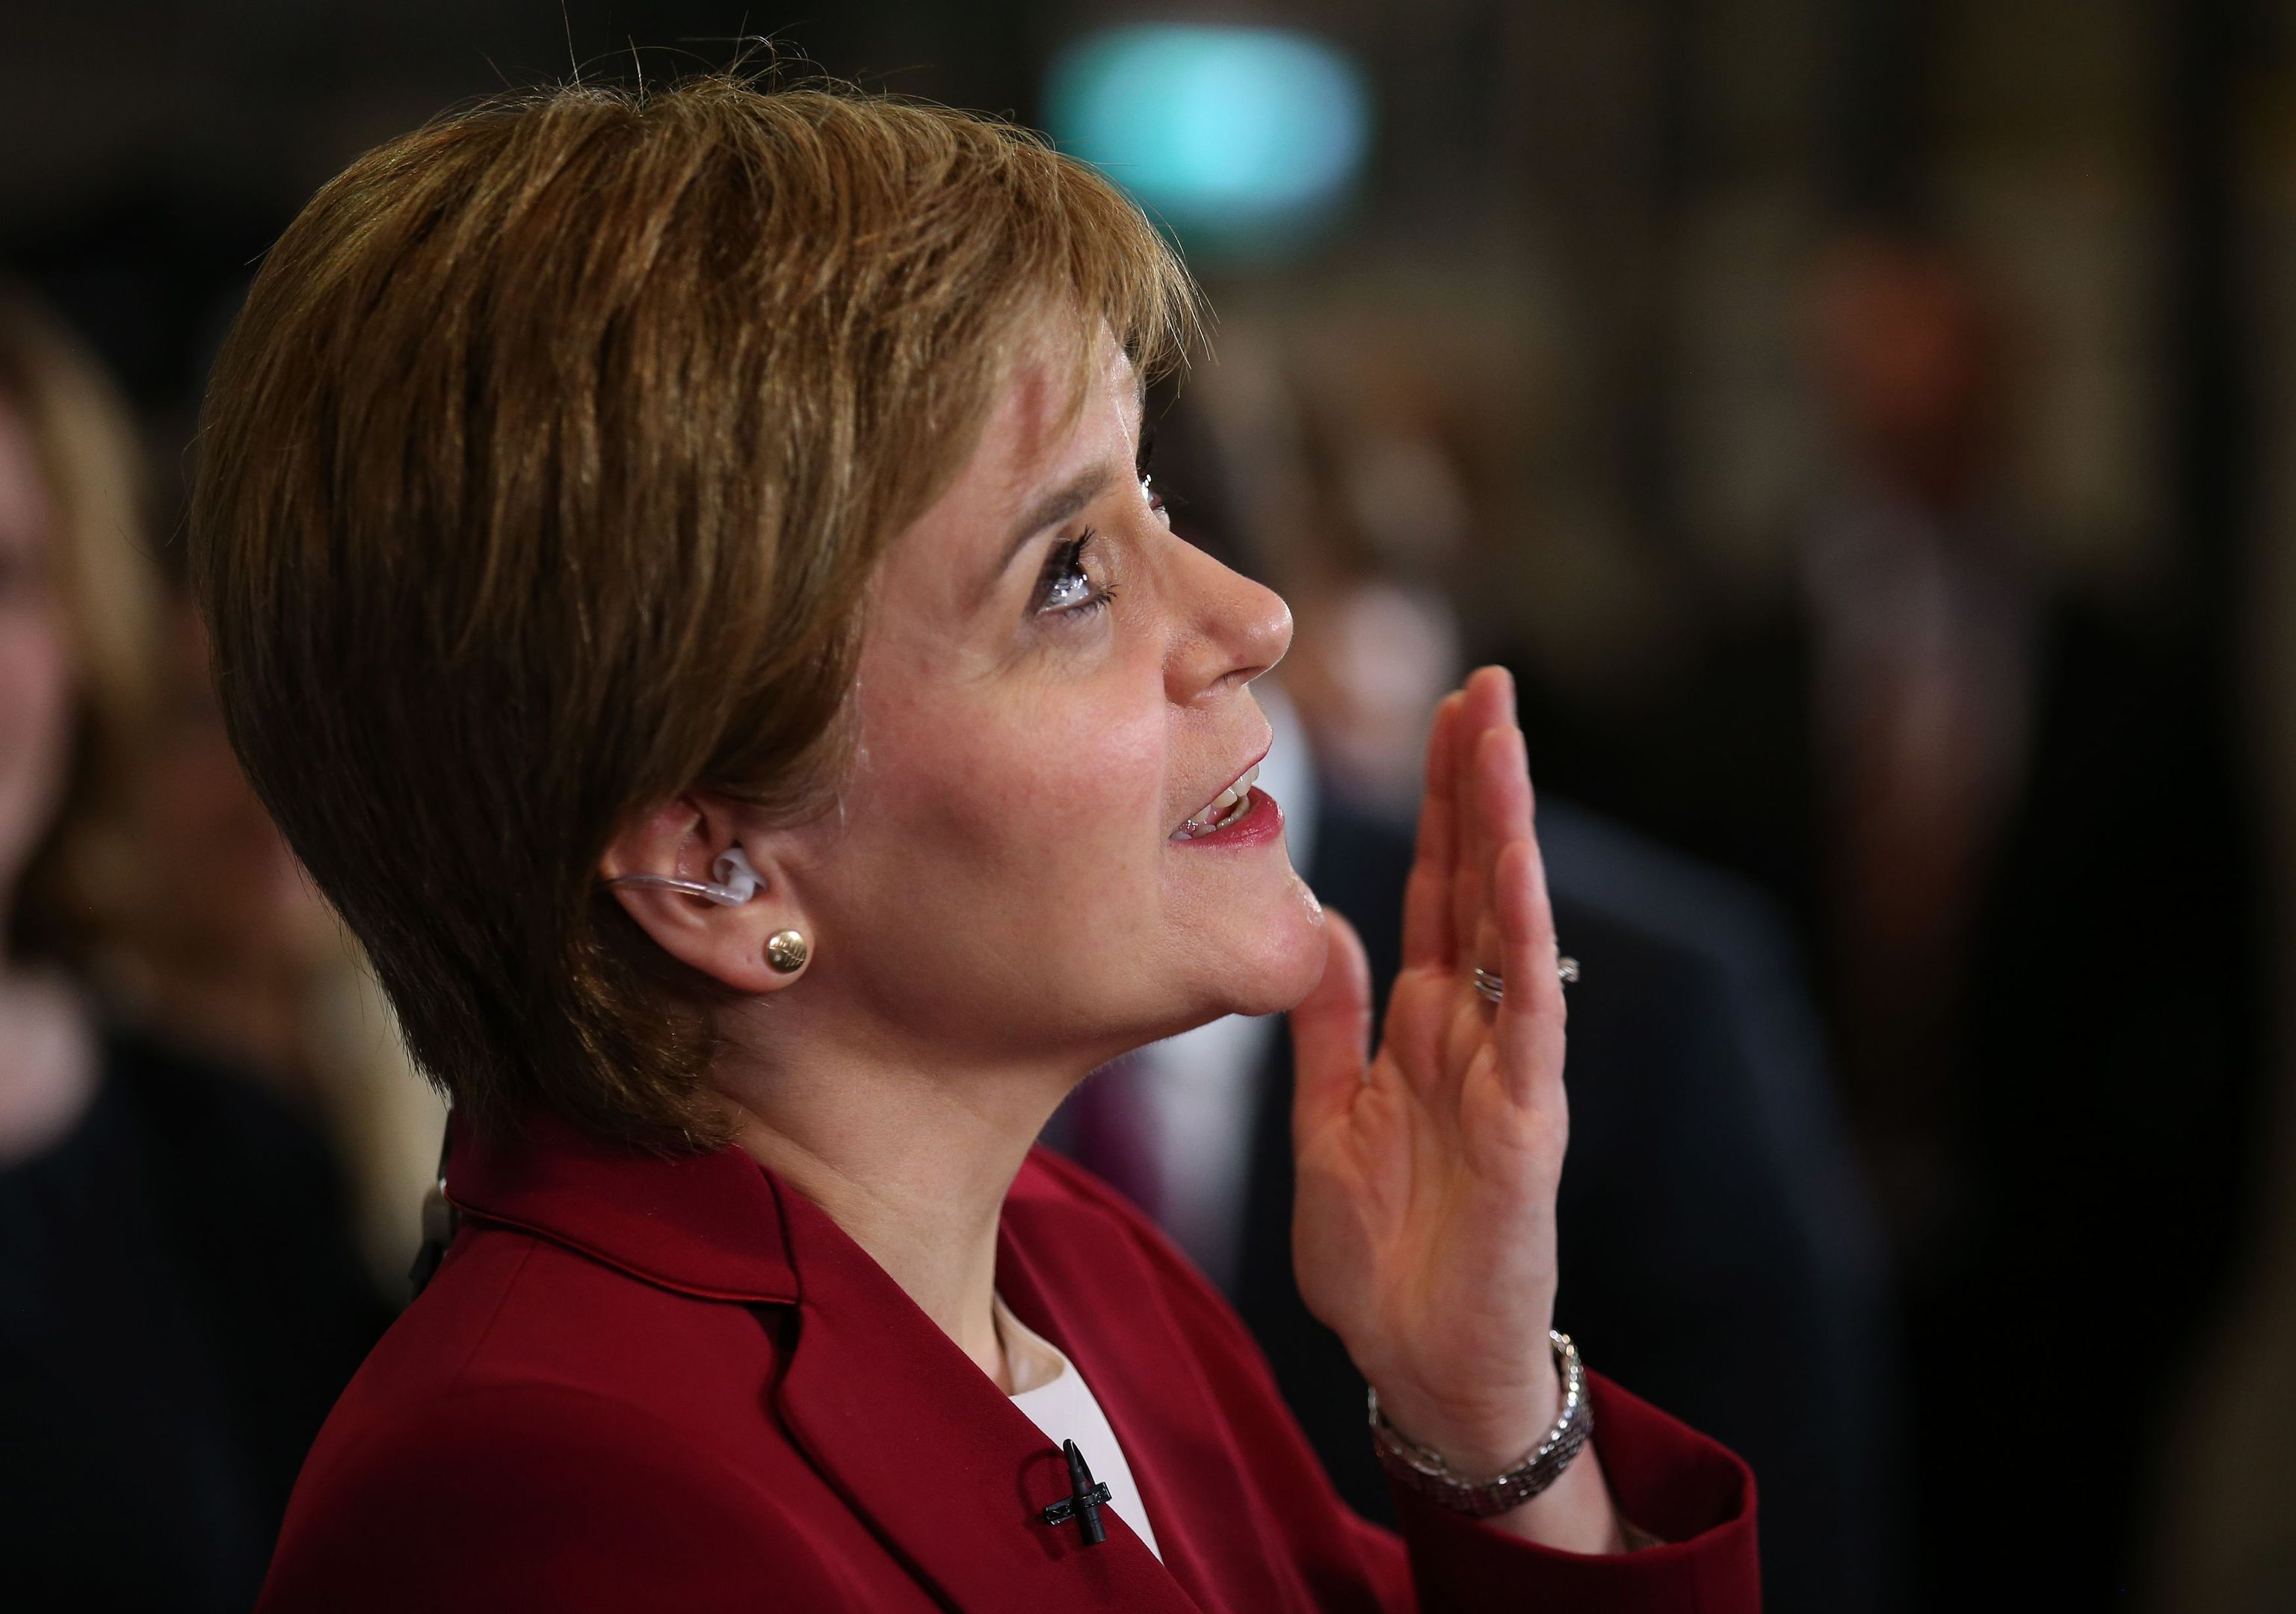 First Minister Nicola Sturgeon speaks to the media at the Emirates Arena in Glasgow (Andrew Milligan/PA Wire)